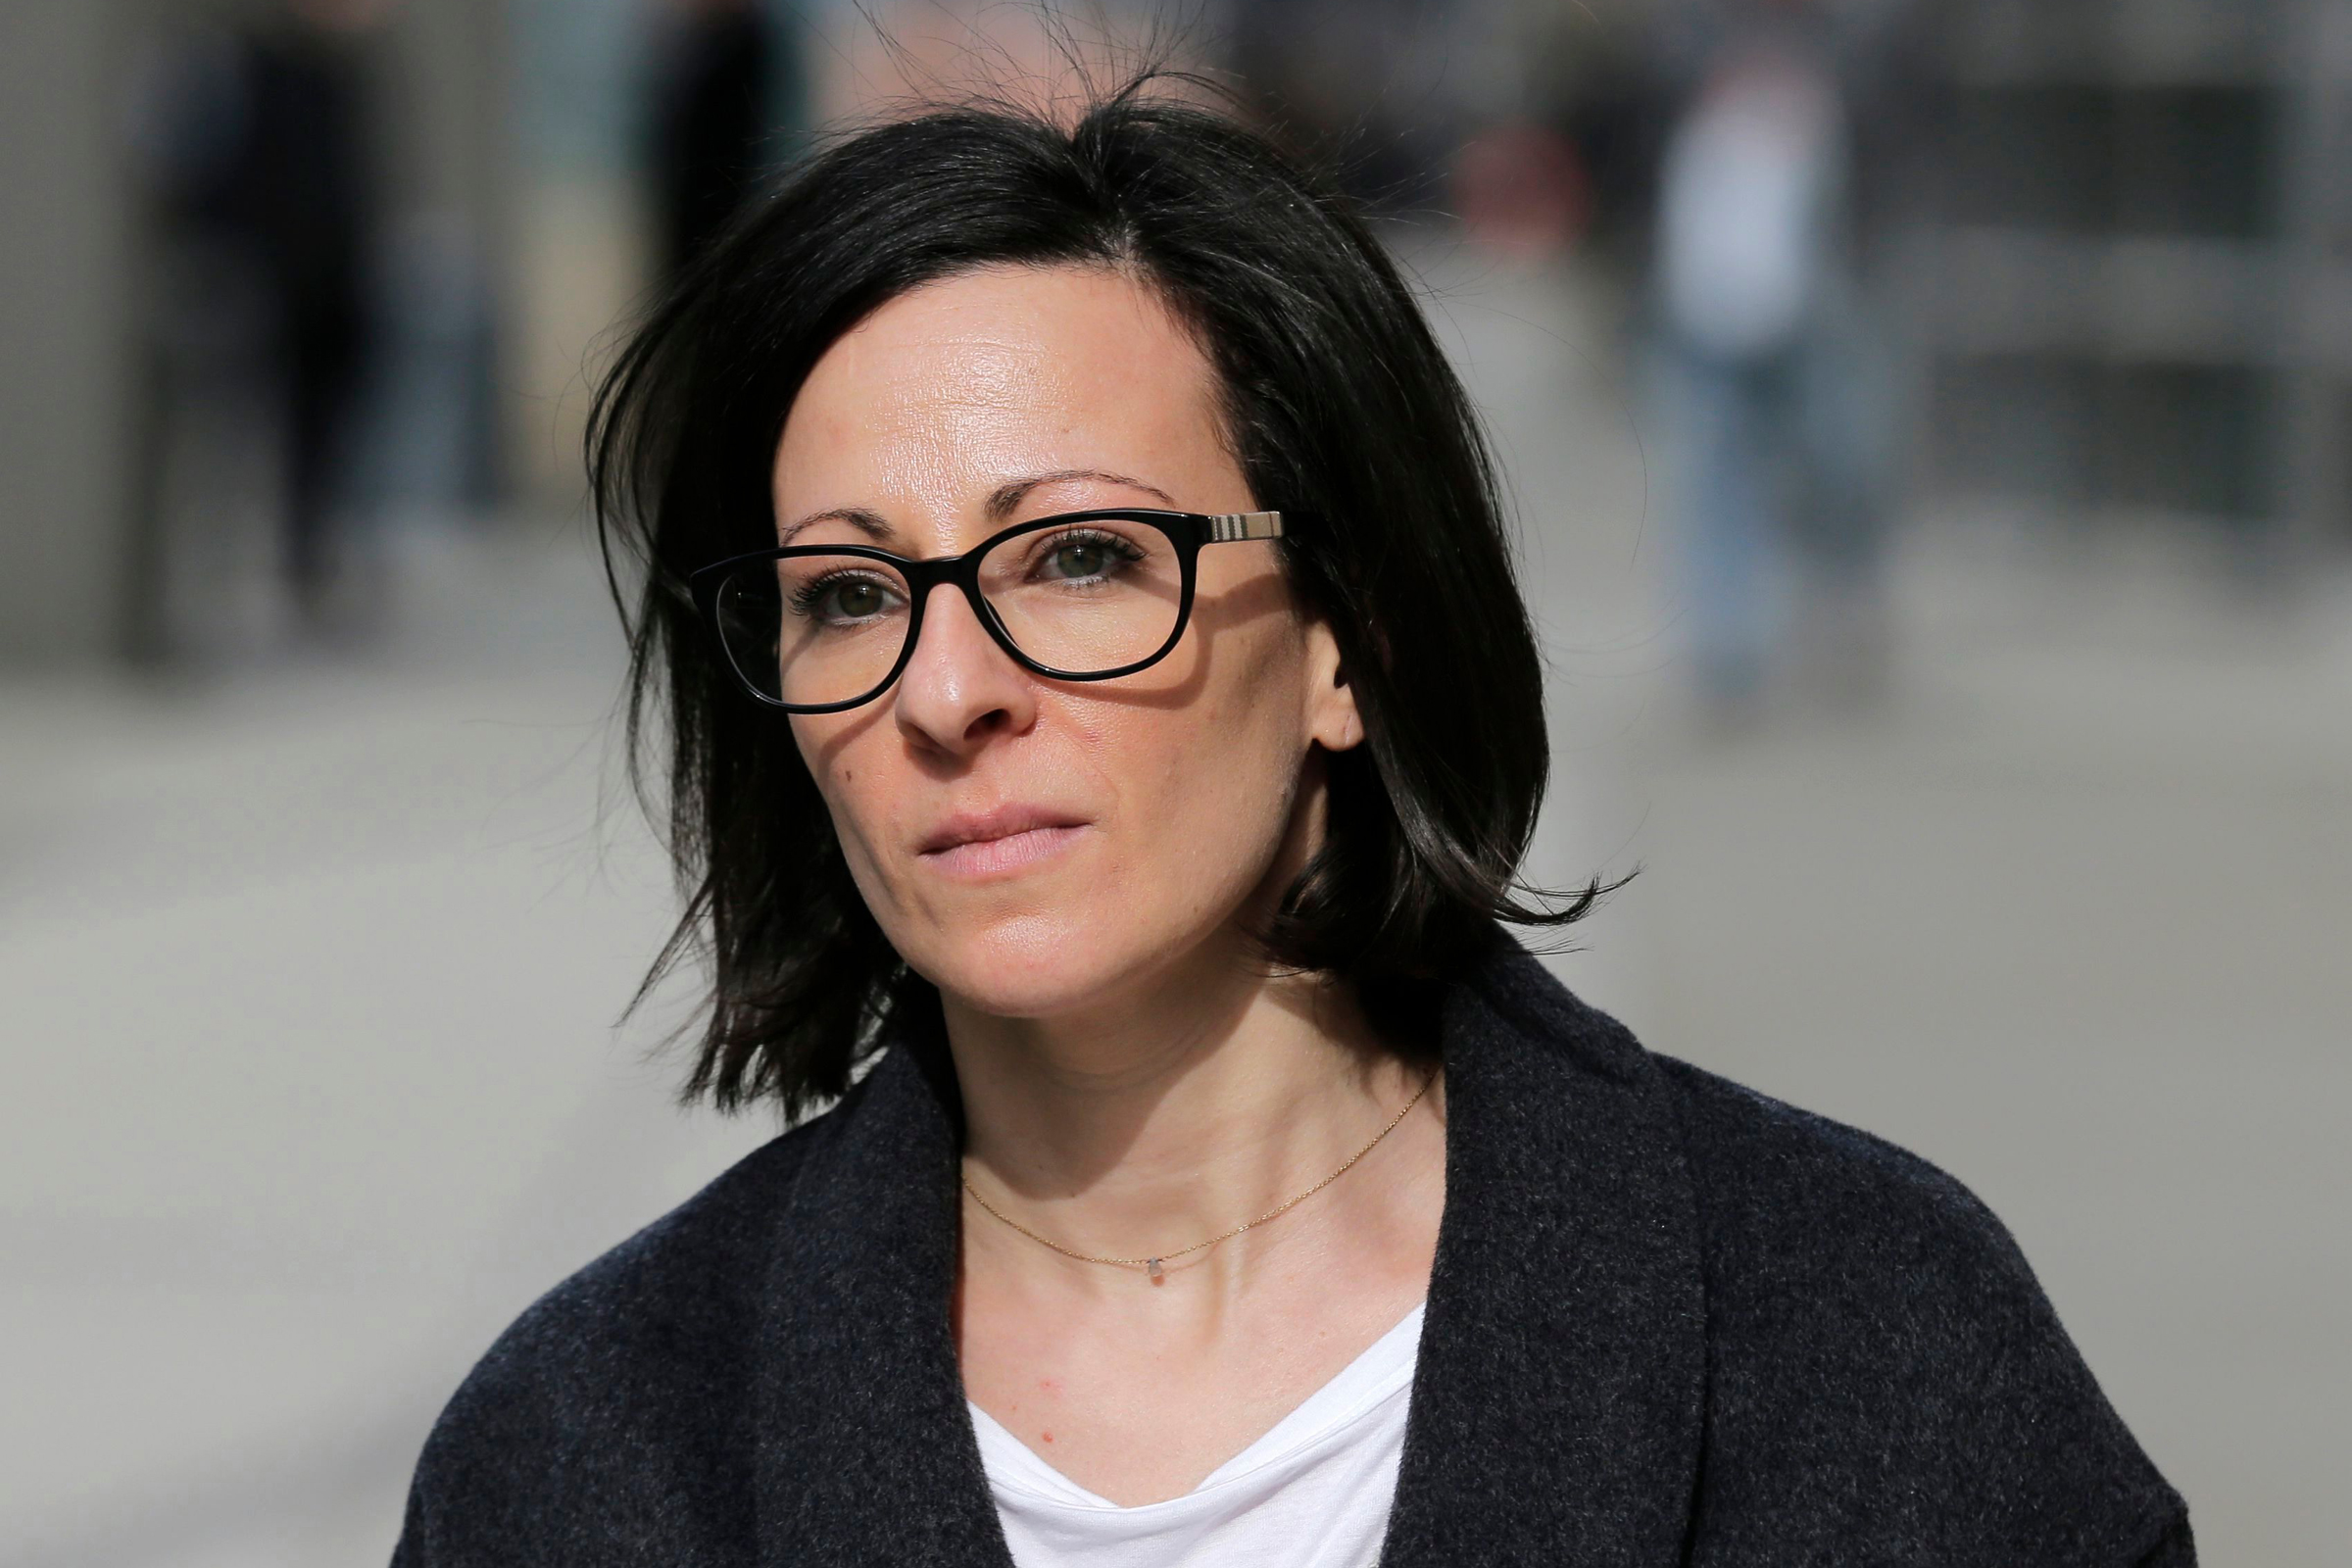 'I Was in One Mode: Protect Keith': NXIVM Member Testifies About Naked Meetings, Group Sex, Dungeon Paddlings